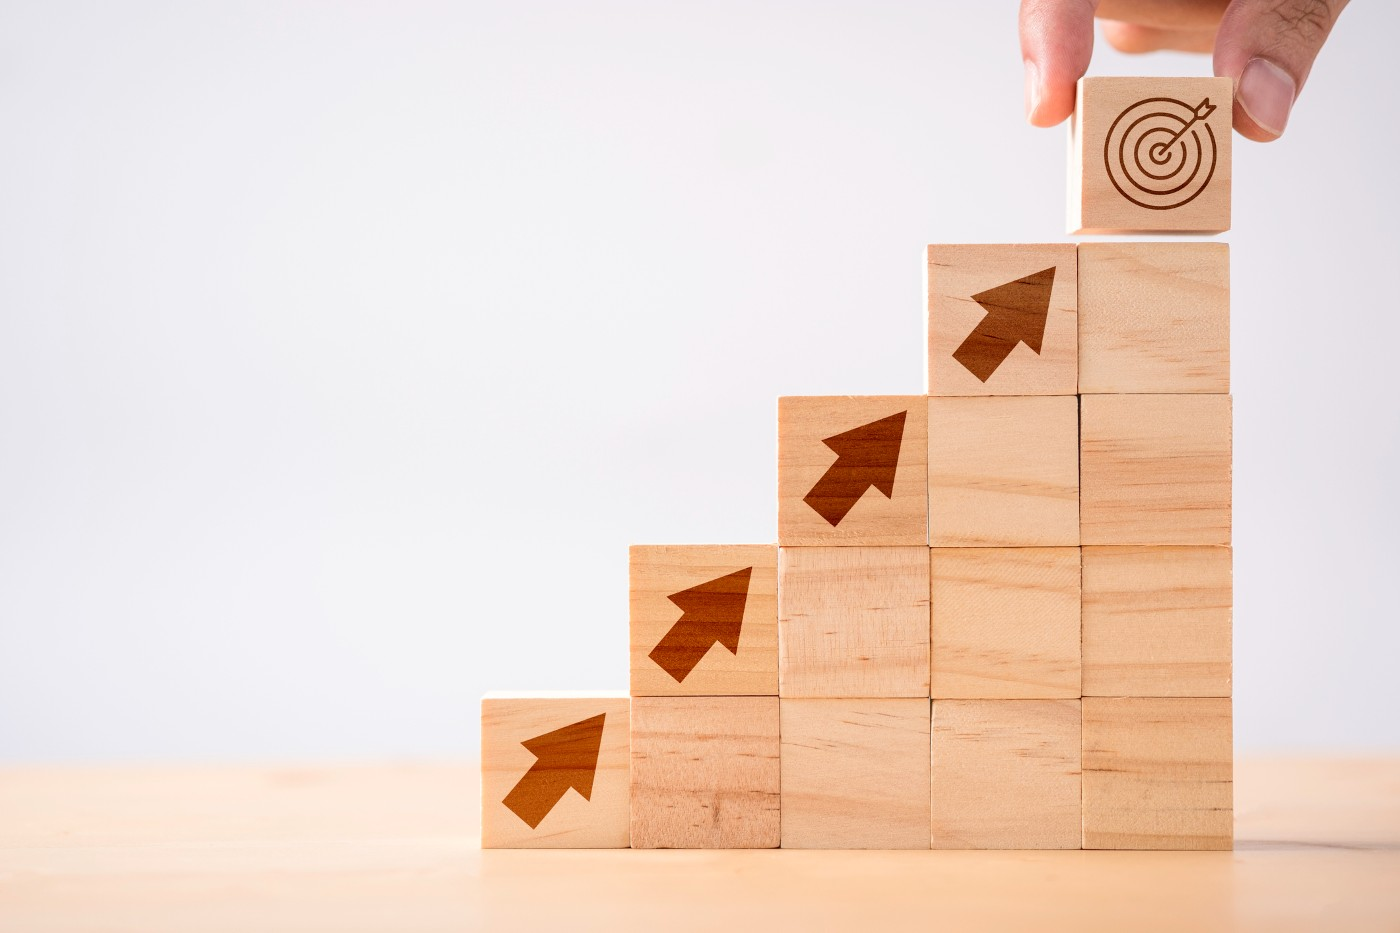 https://tickertapecdn.tdameritrade.com/assets/images/pages/md/Wooden blocks with arrows pointing toward a target: Follow the yield curve for insight on interest rate expectations and inflation